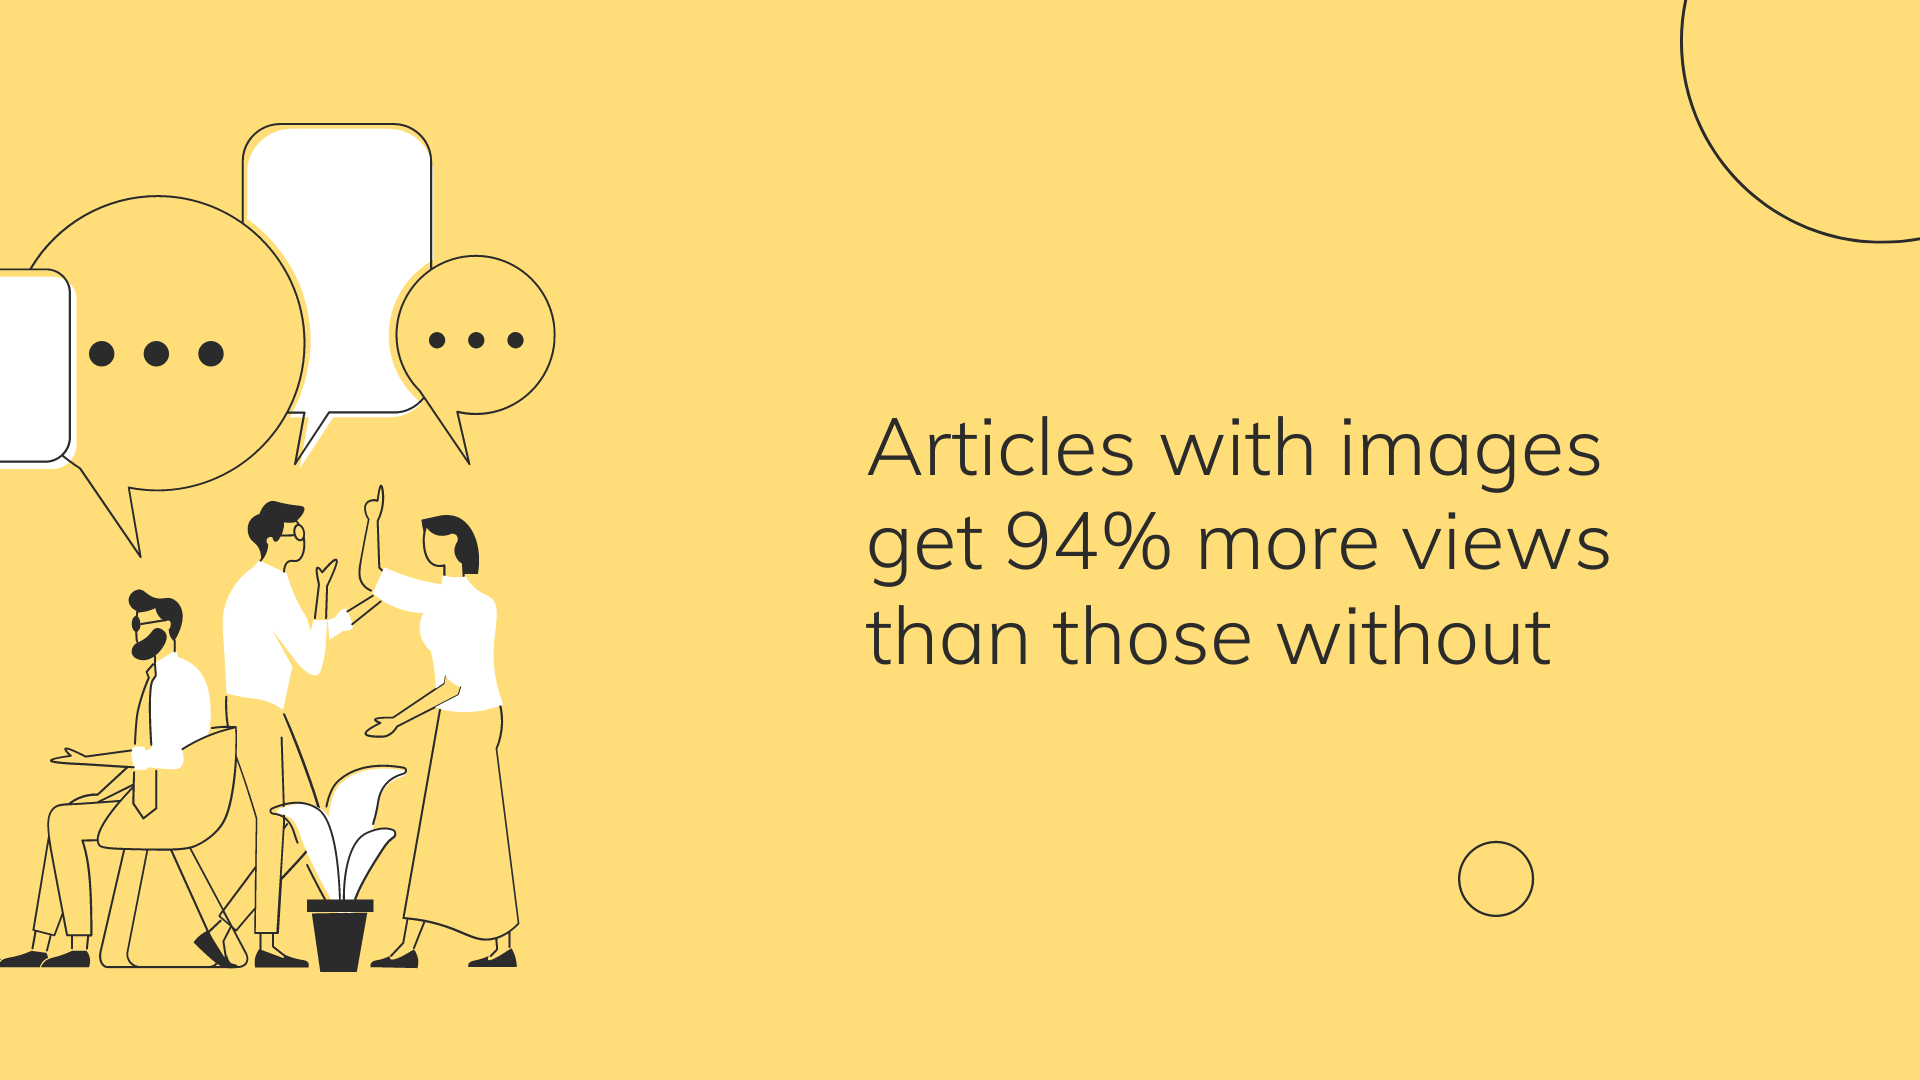 """yellow background, cartoon people with """"..."""" in chat bubbles overhead. Text """"Articles with images get 94% more views than those without"""""""